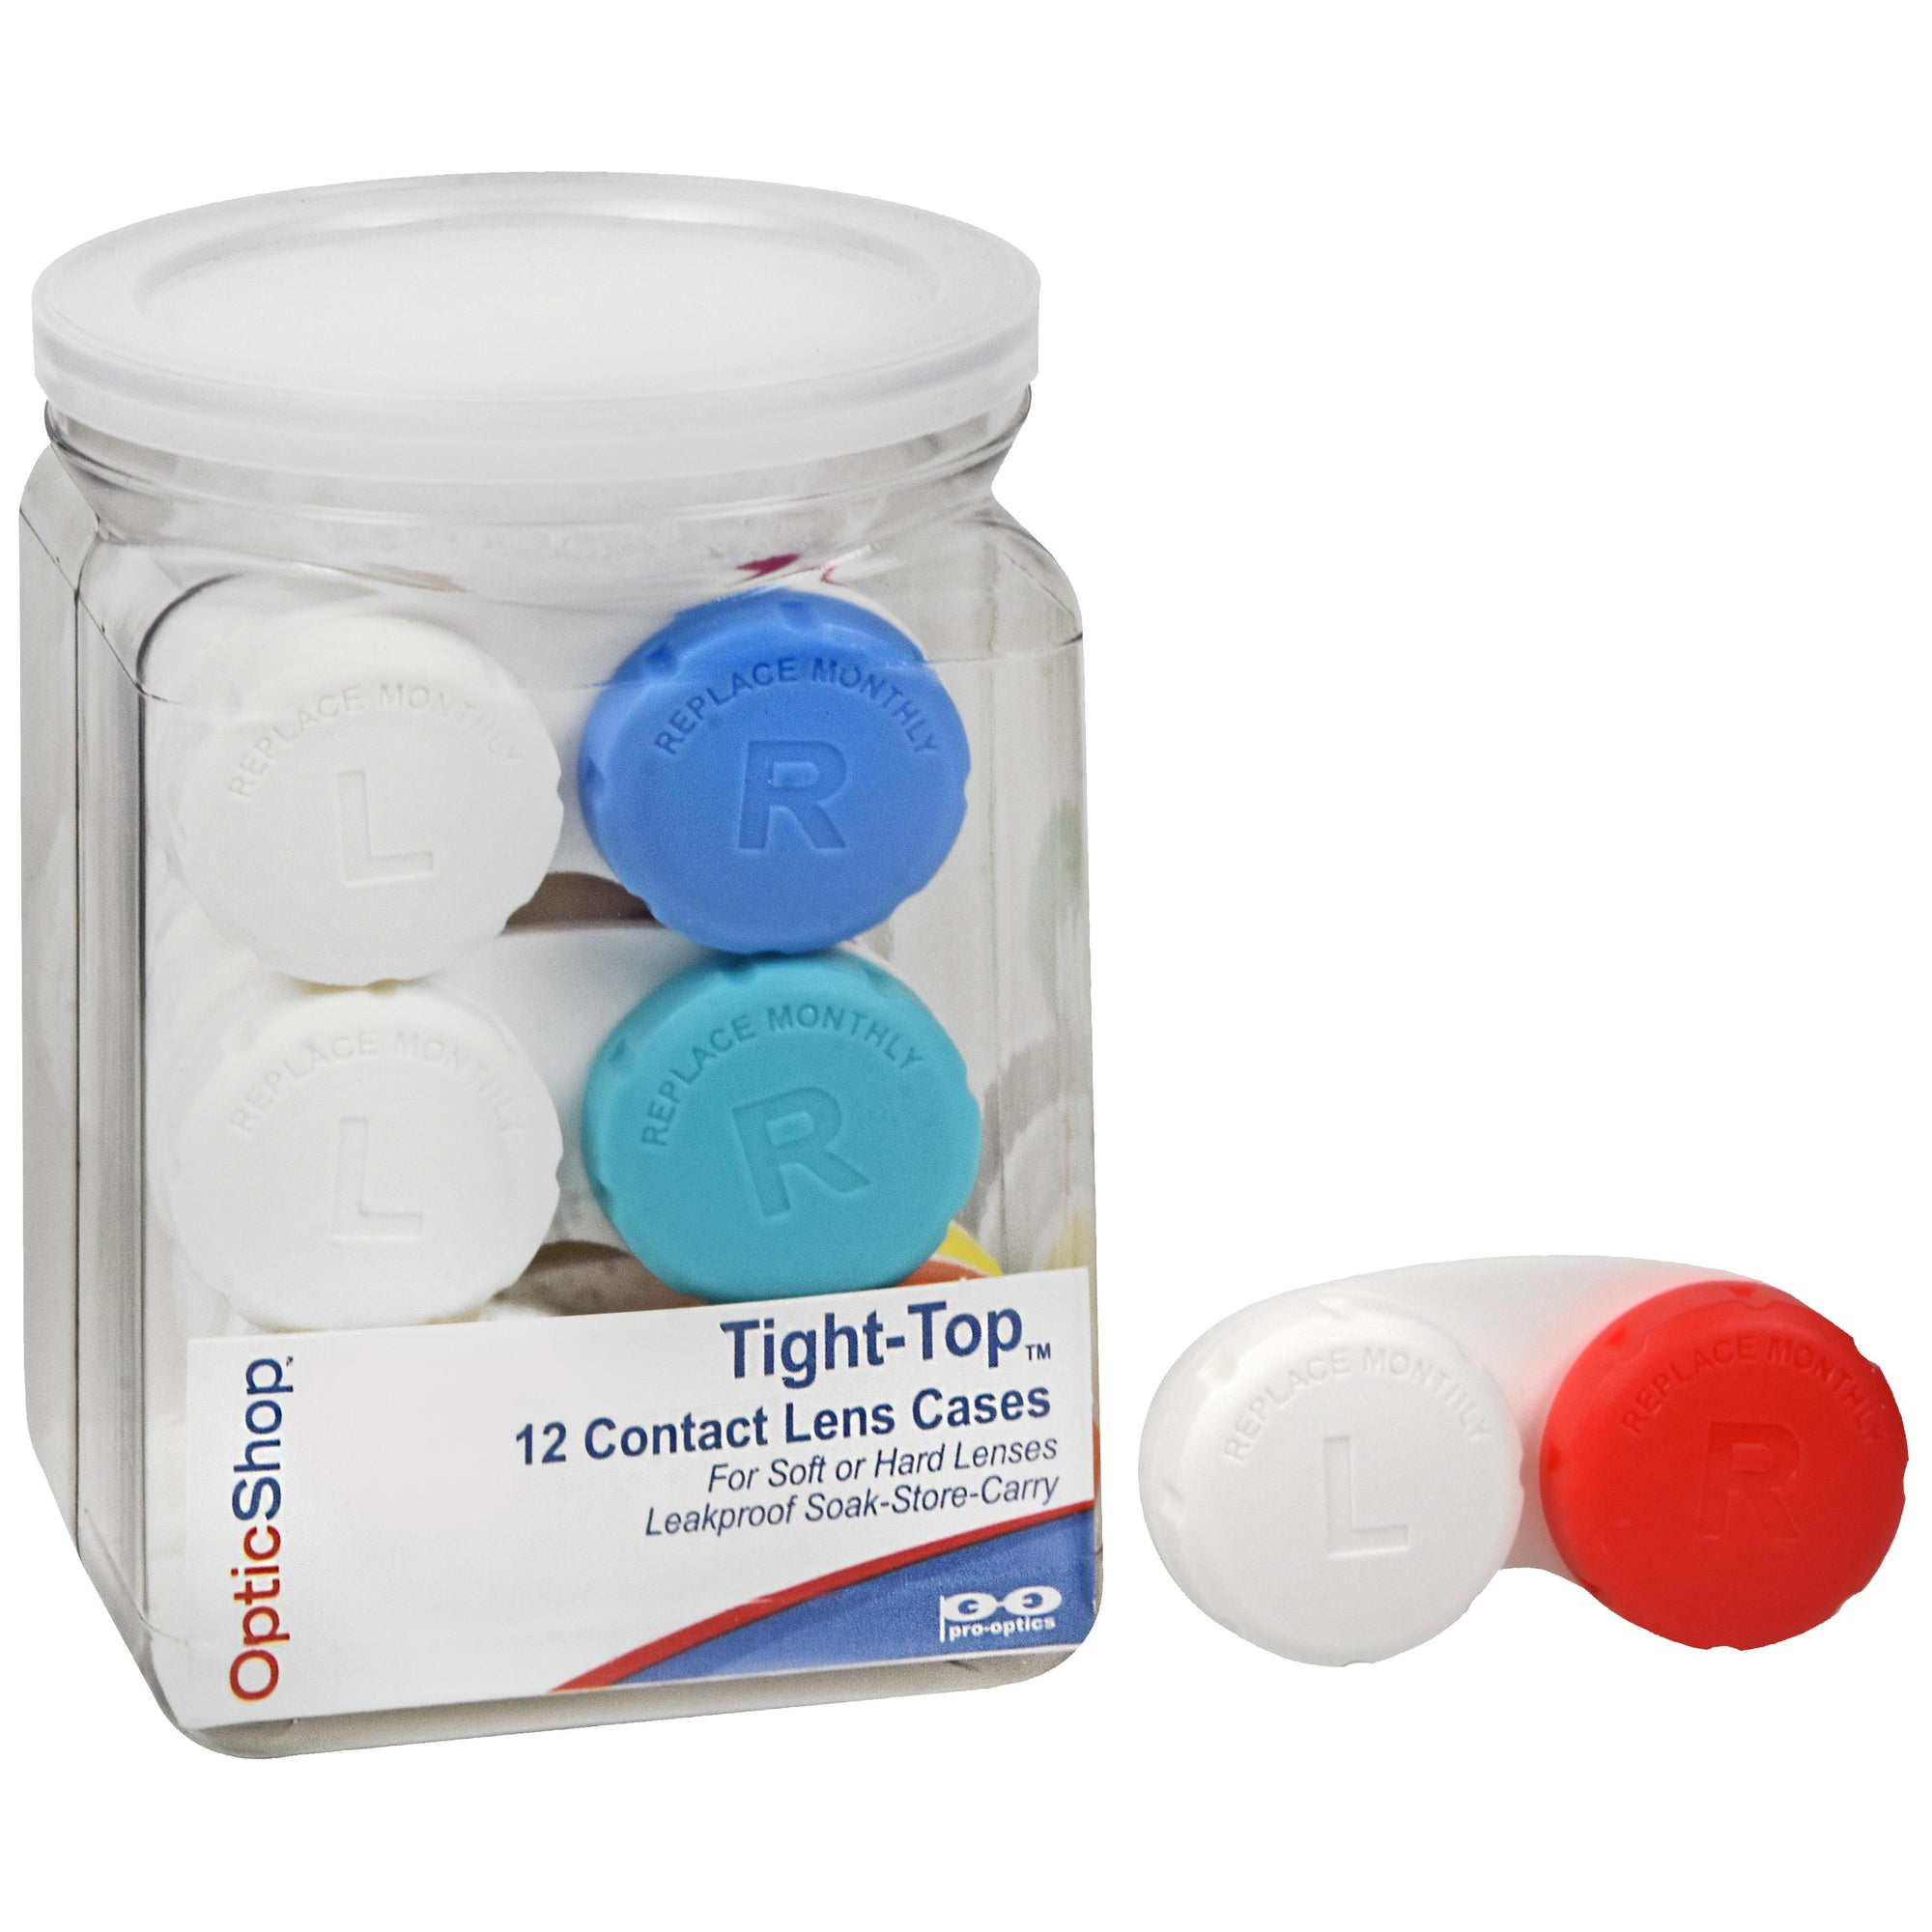 Optic Shop Tight-Top™ Contact Lens Case - 12-ct Jar (225-12)-Pro-Optics LLC